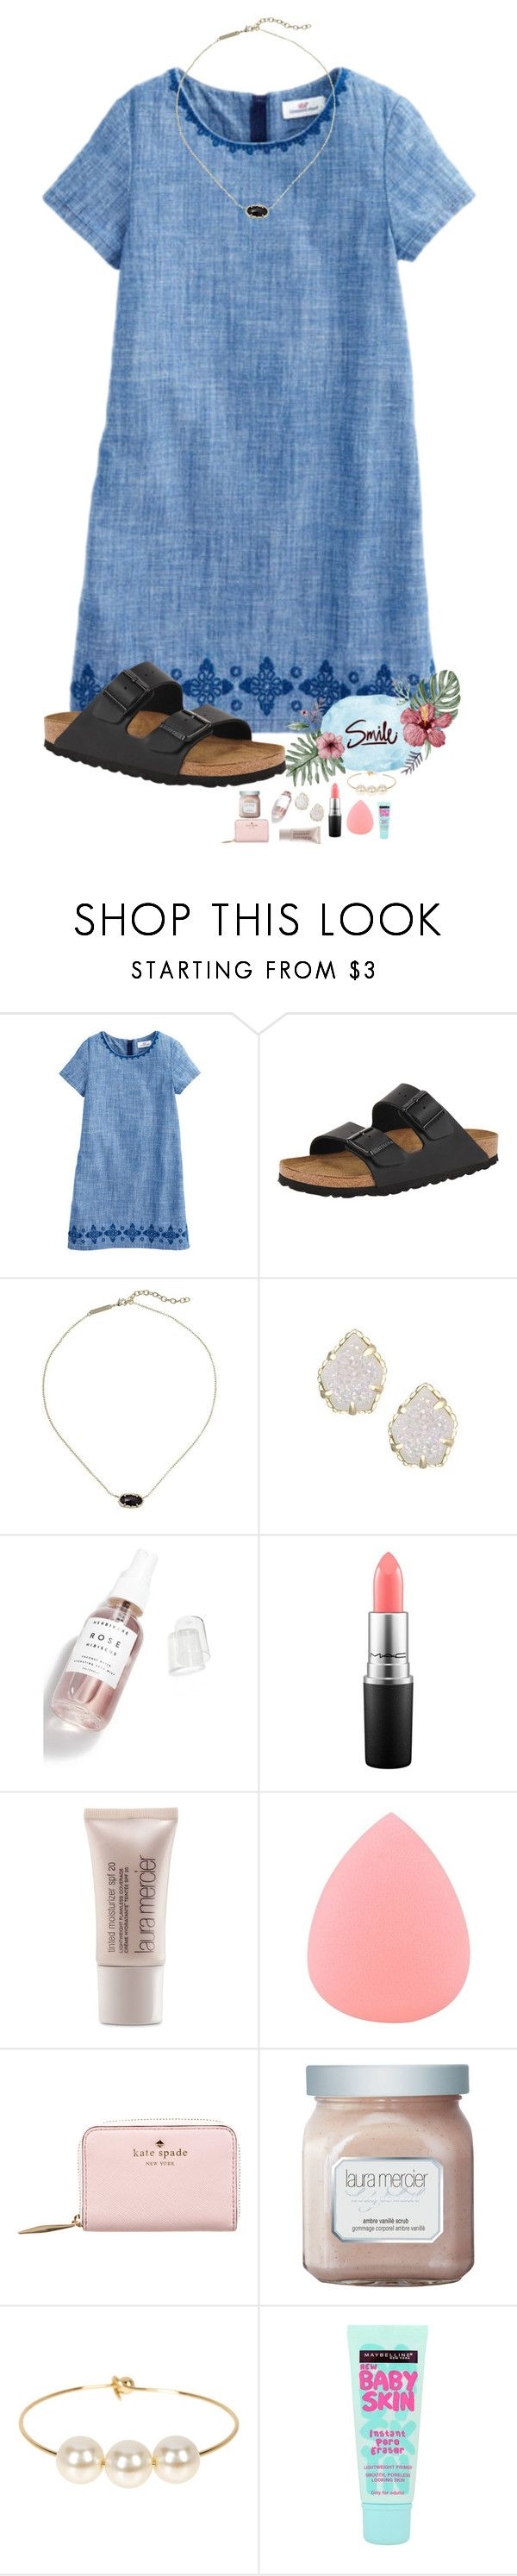 """Smile it looks good on u"" by kolbee24 ❤ liked on Polyvore featuring beauty, Birkenstock, Kendra Scott, Herbivore, MAC Cosmetics, Laura Mercier, Zodaca, Kate Spade, Jules Smith and Maybelline"